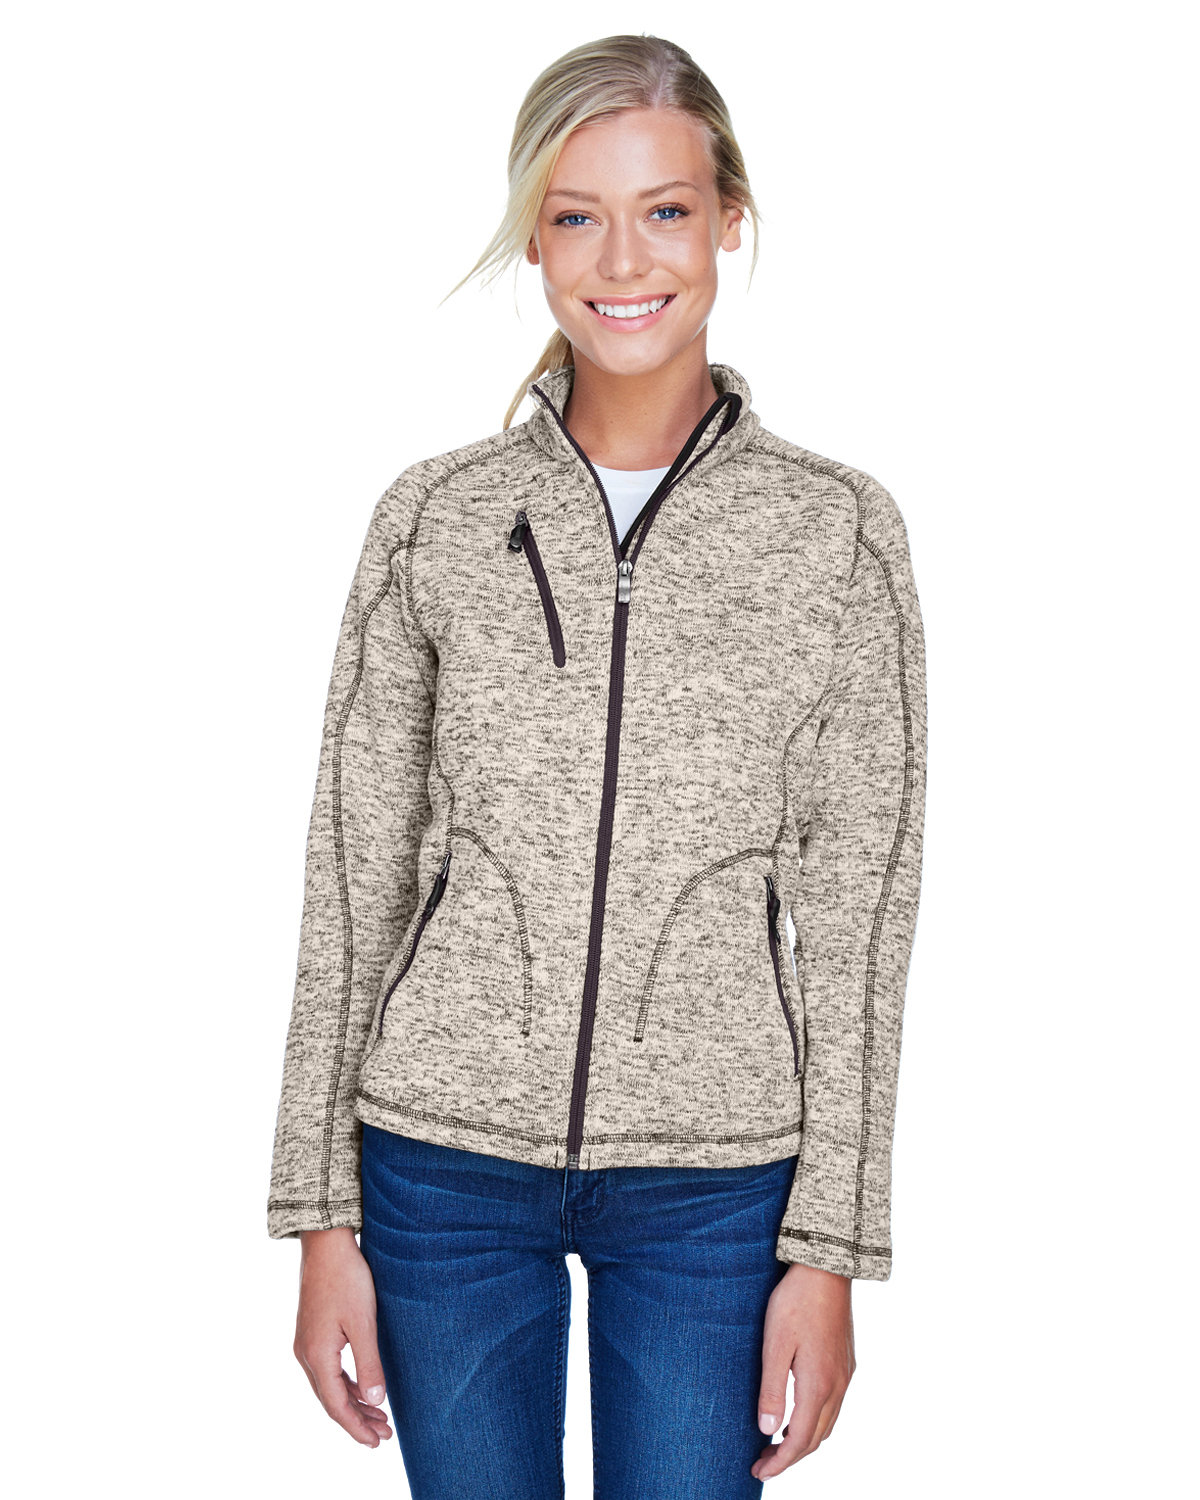 check out 7daa8 287f7 Front Quarter Back Side · Gallery View Download HiRes Design Studio. 78669 Ash  City - North End Ladies  Peak Sweater Fleece Jacket